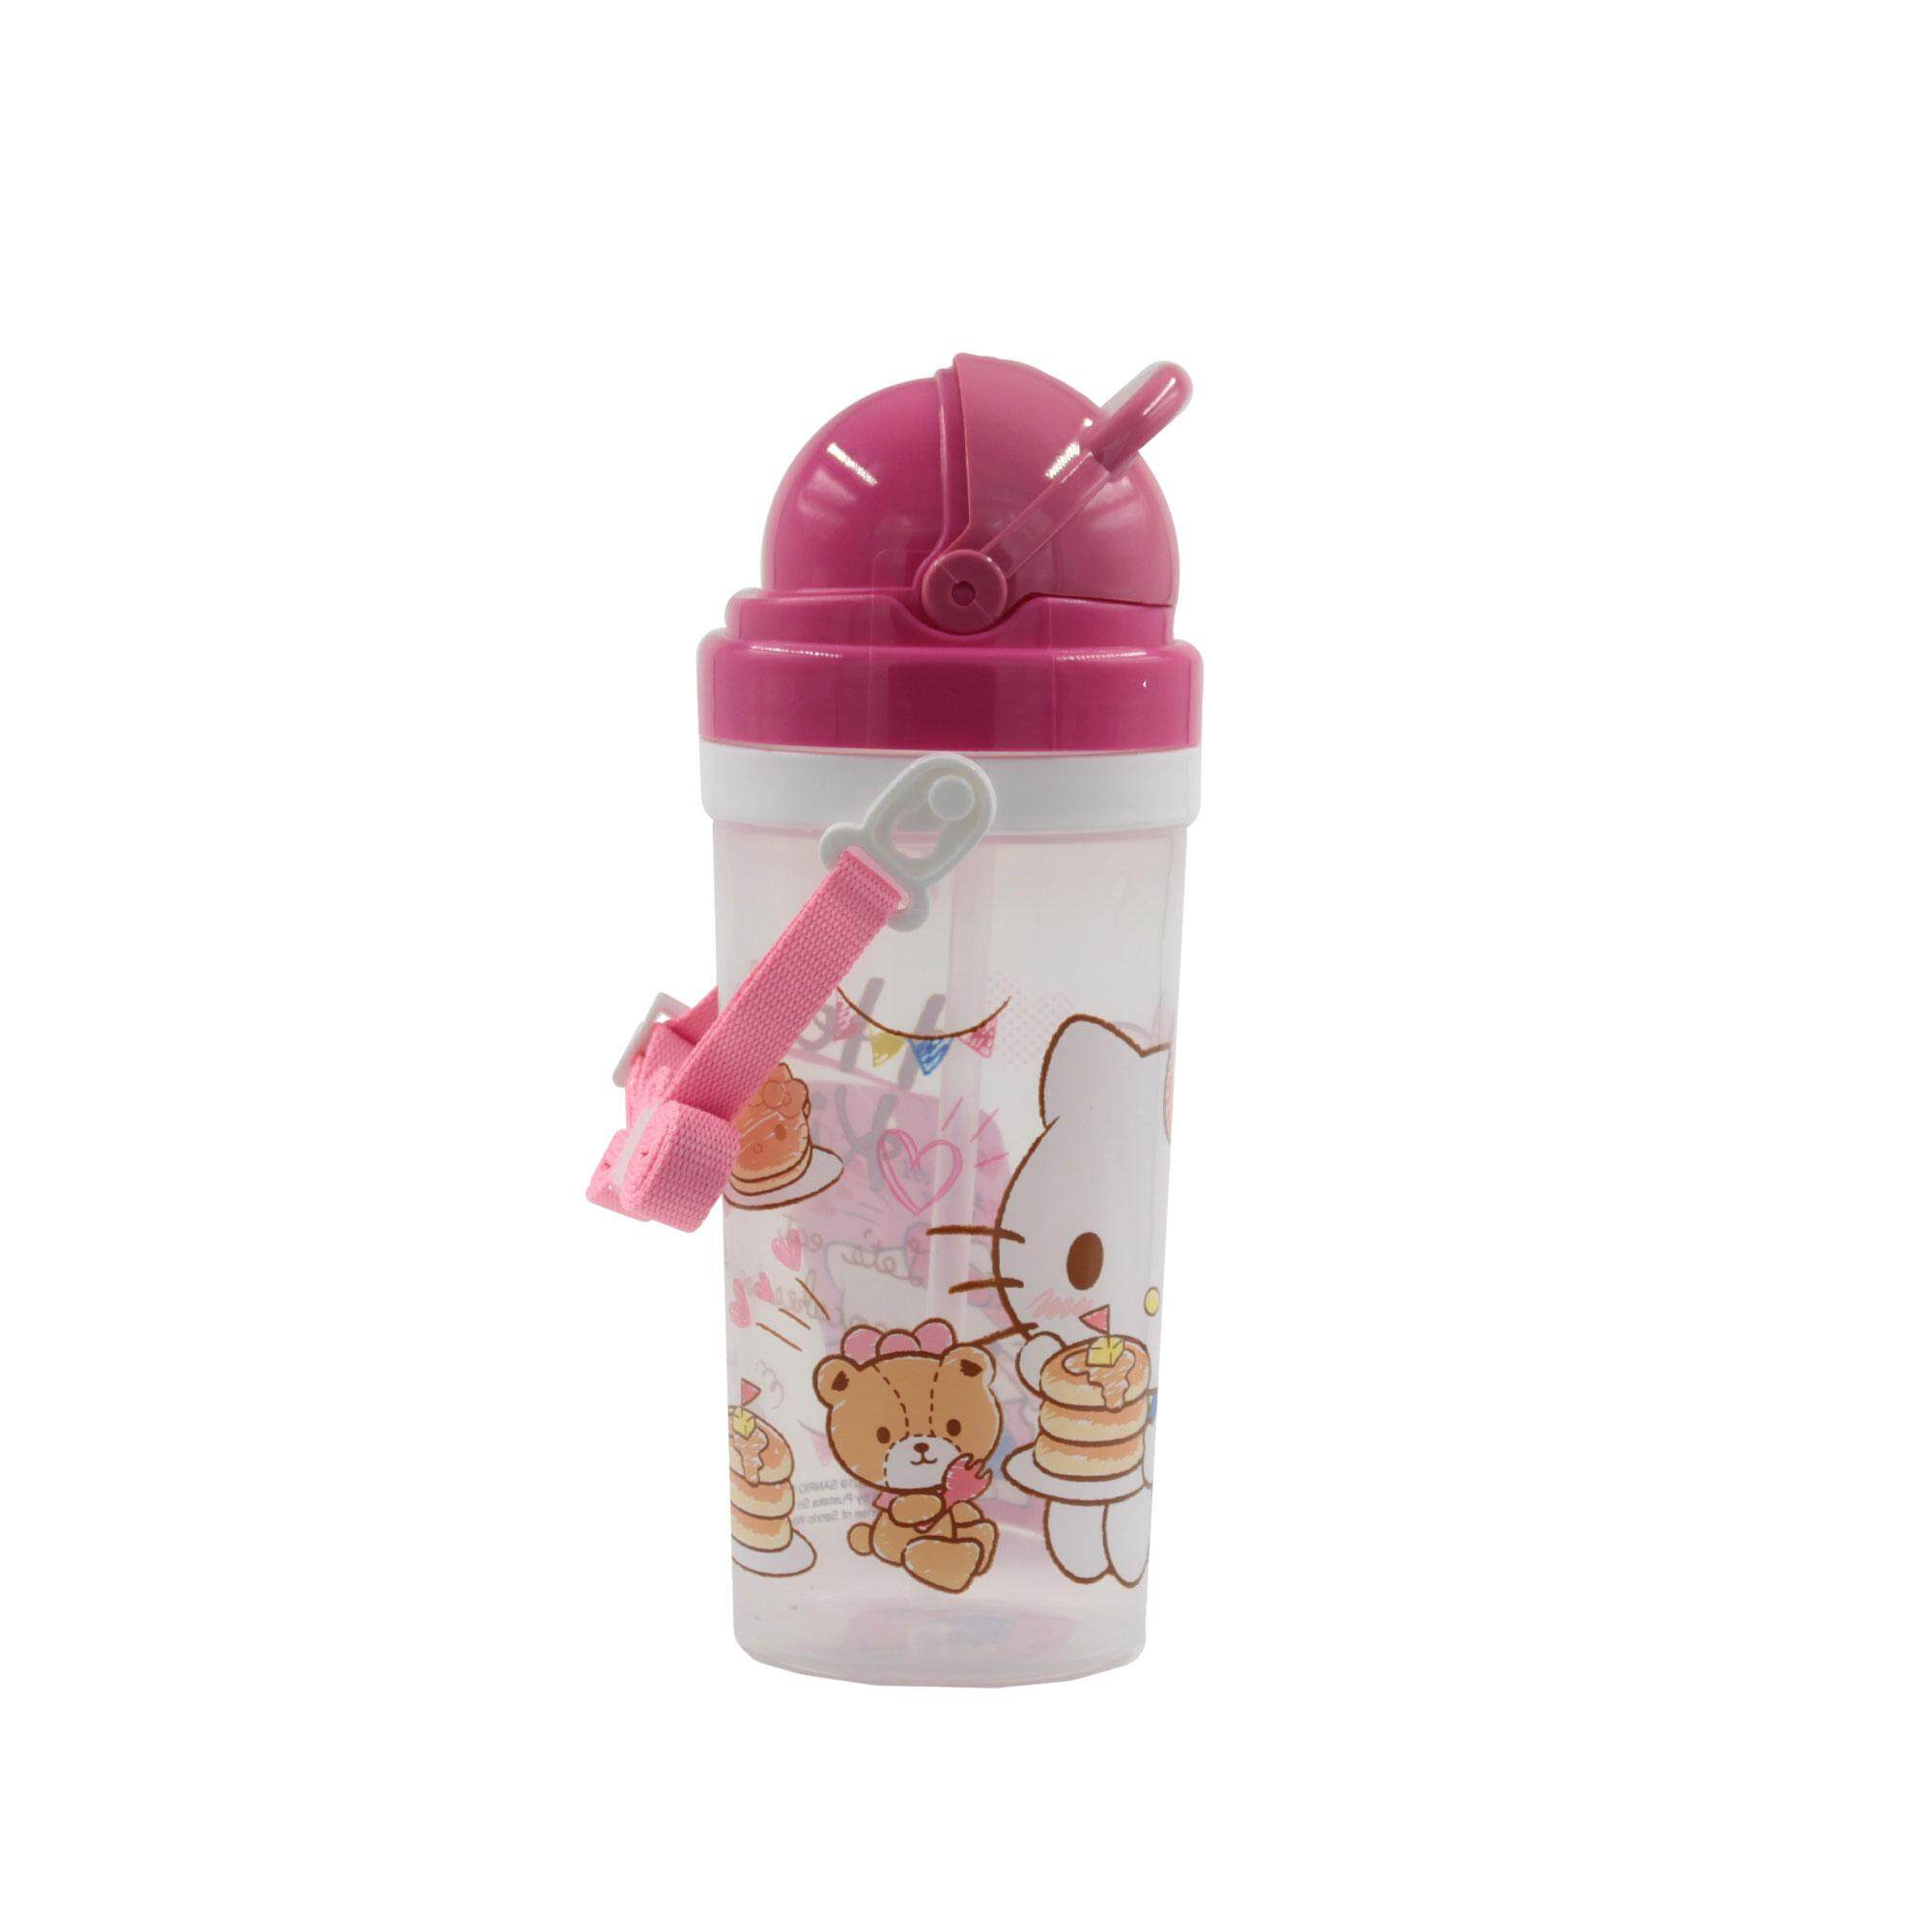 Hello Kitty Its Snack Time! BPA Free Kids Water Bottle 500 ML with Pop-Up Straw